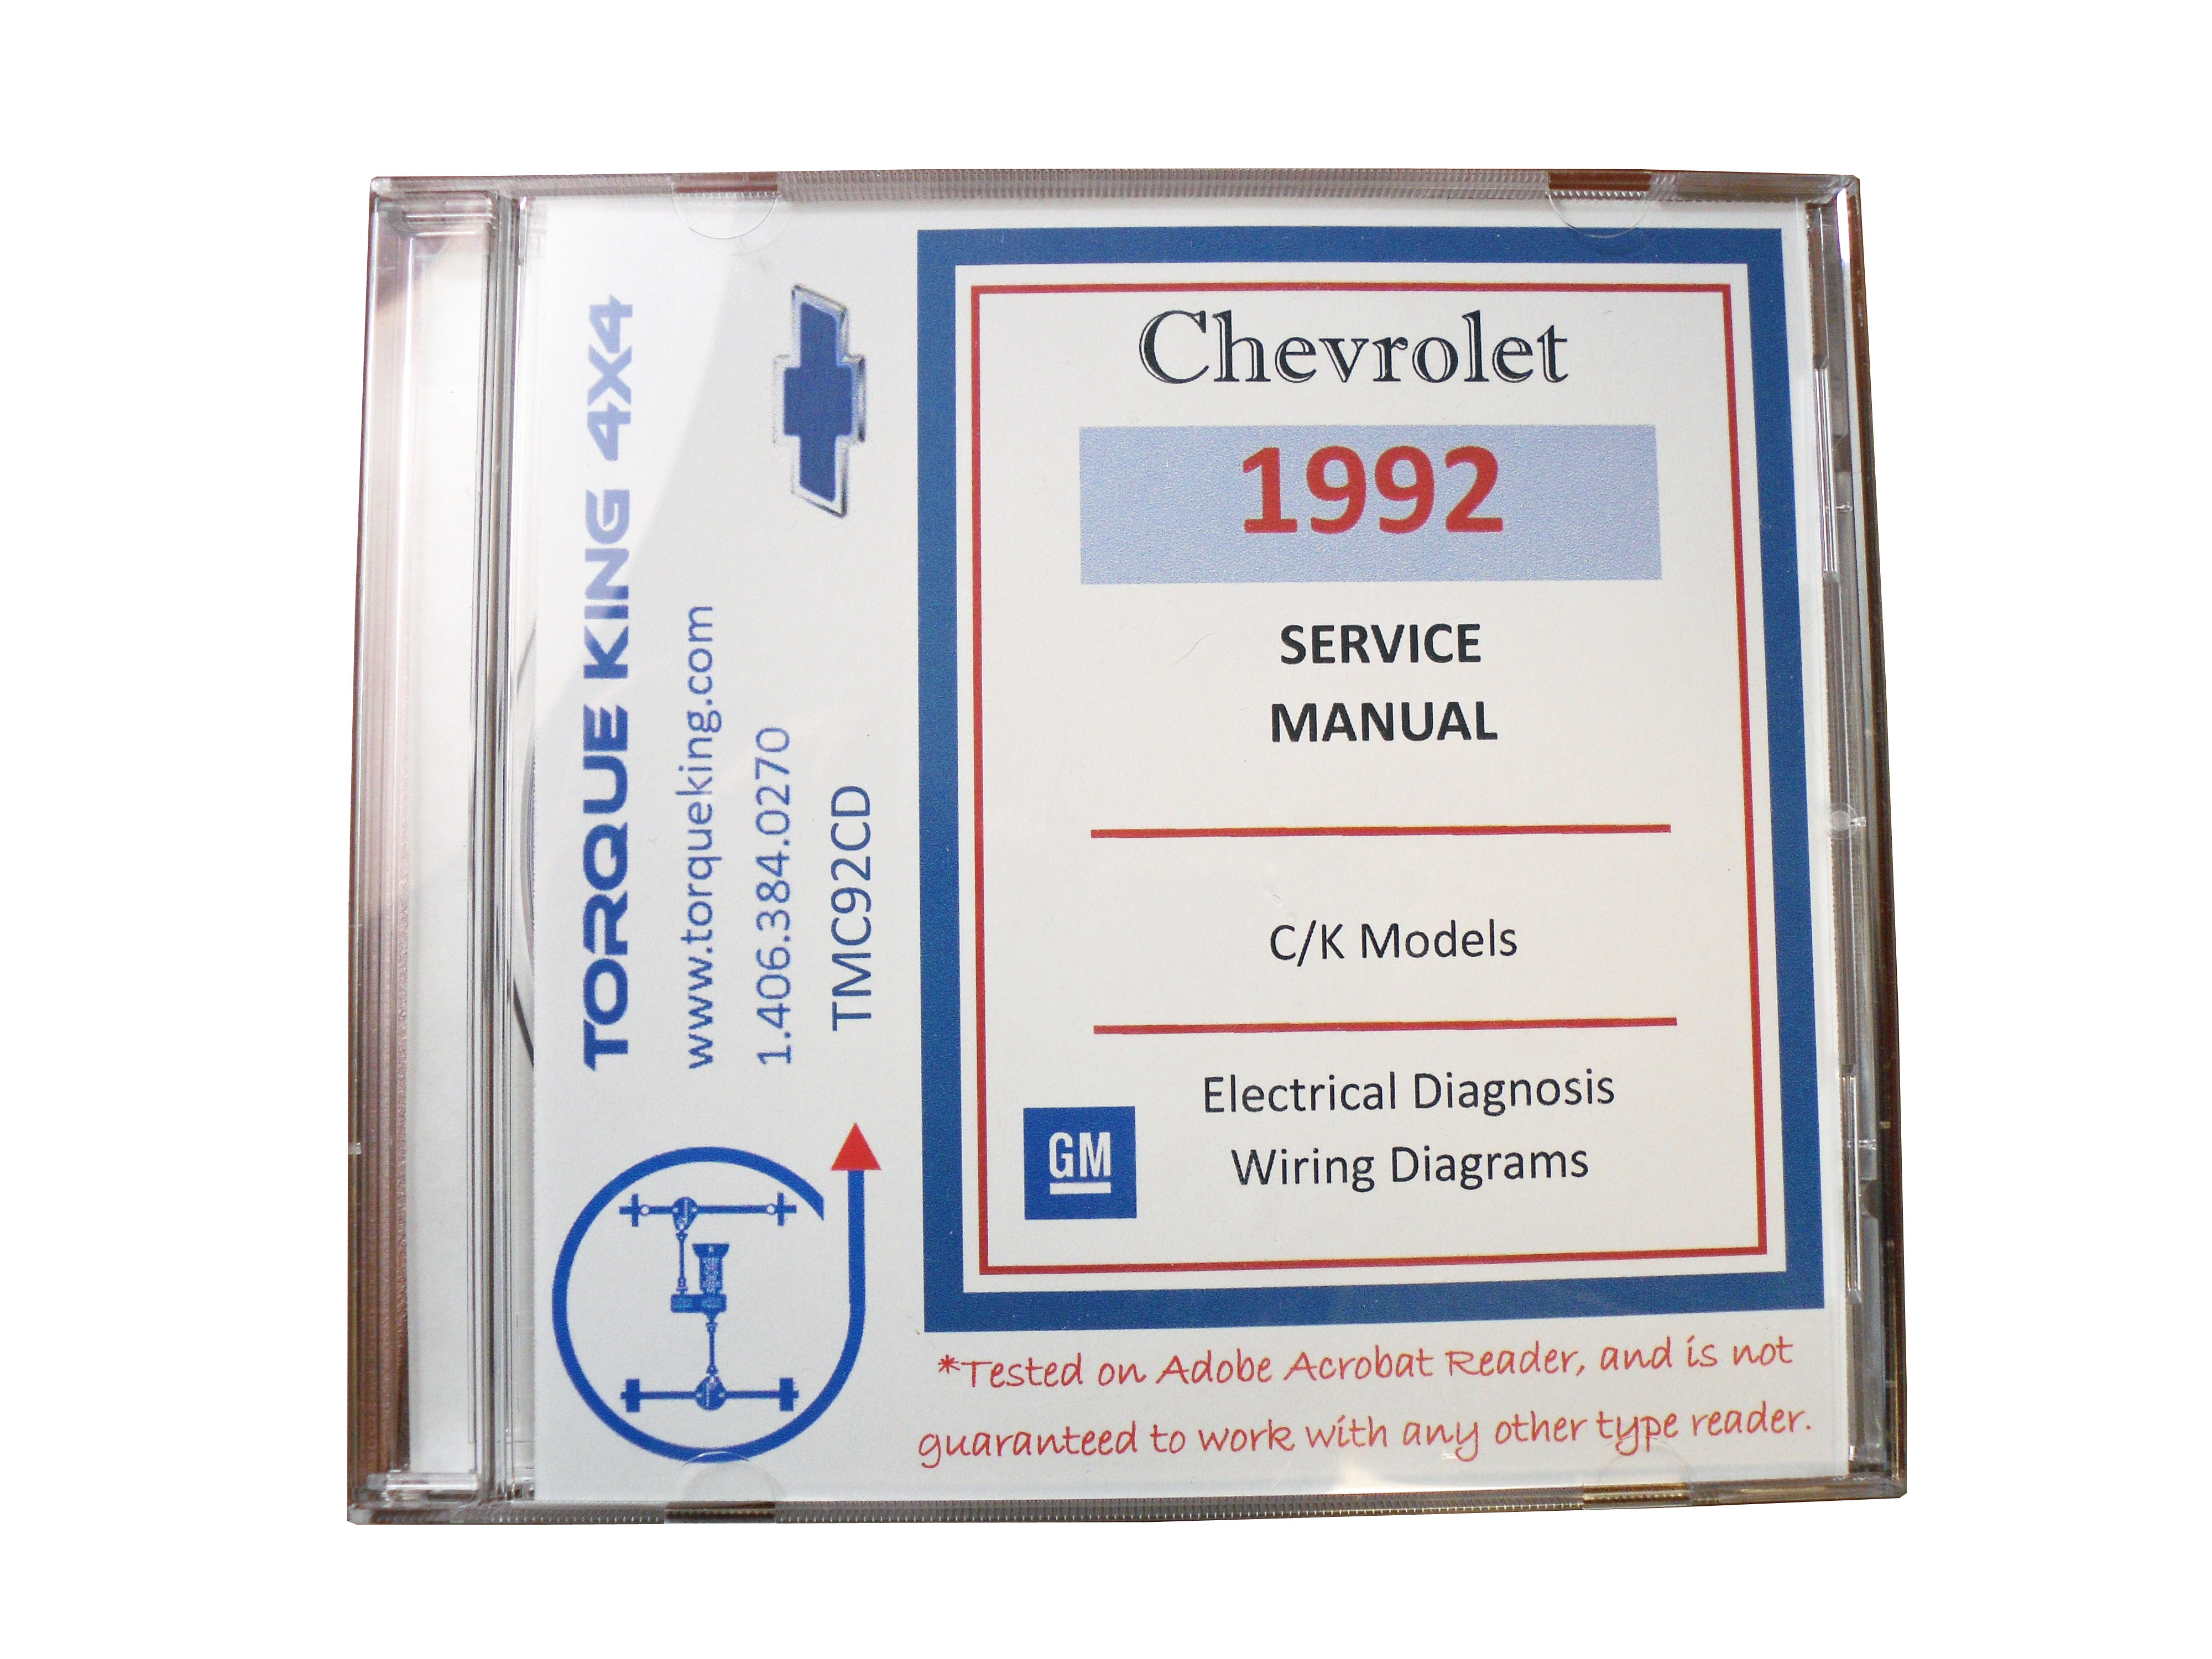 TMC92CD 1992 Chevy and GMC C/K Truck Factory Service Manual on CD for 1992  model year C1500, K1500, C2500, K2500, C3500, K3500 models.